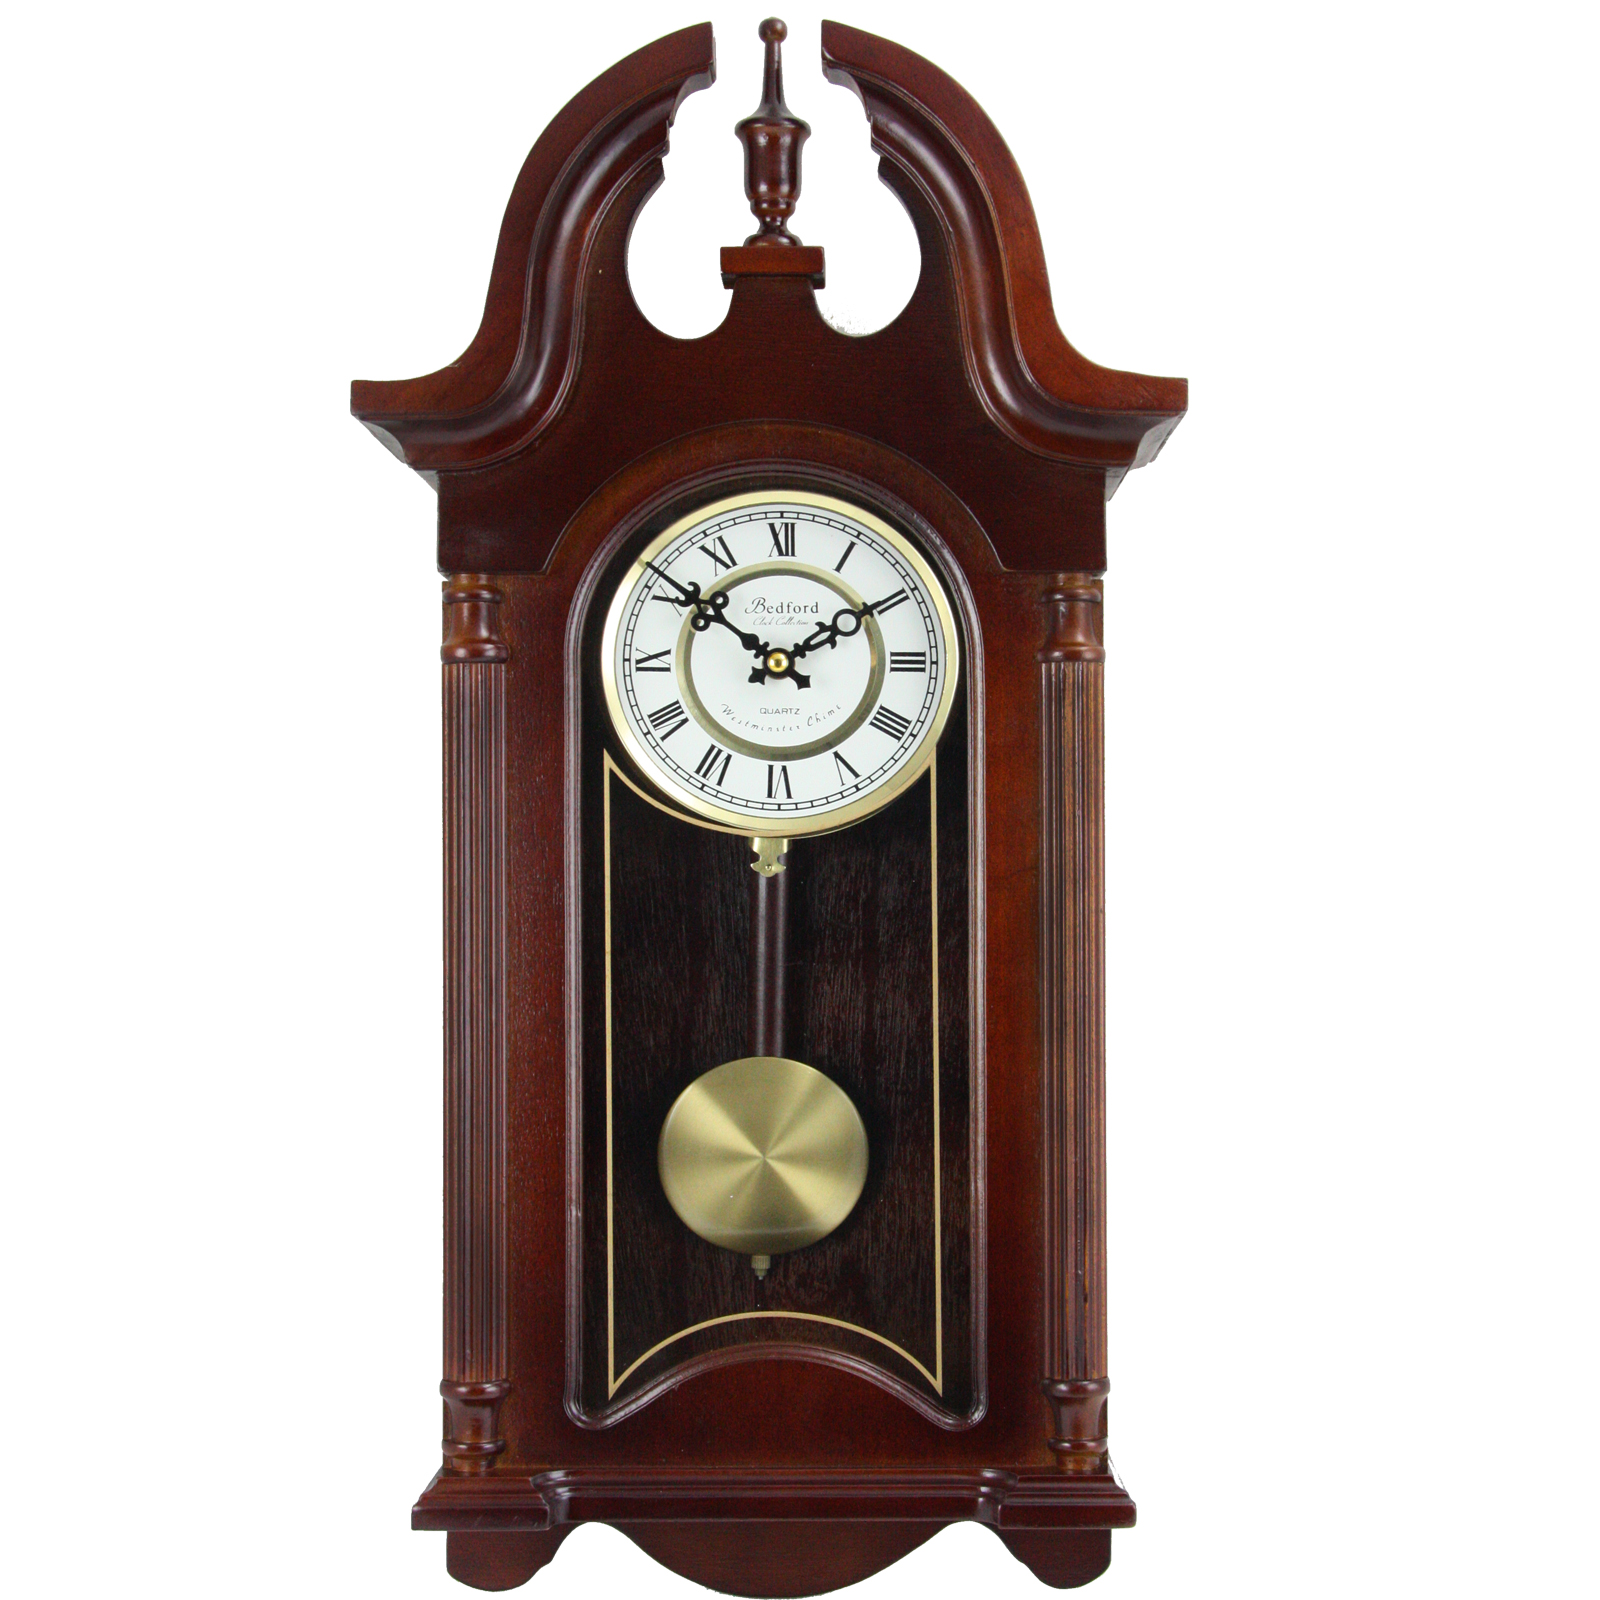 "Bedford Clock Collection 26.5"" Colonial Mahogany Cherry Oak Finish Chiming Wall Clock... by Supplier Generic"